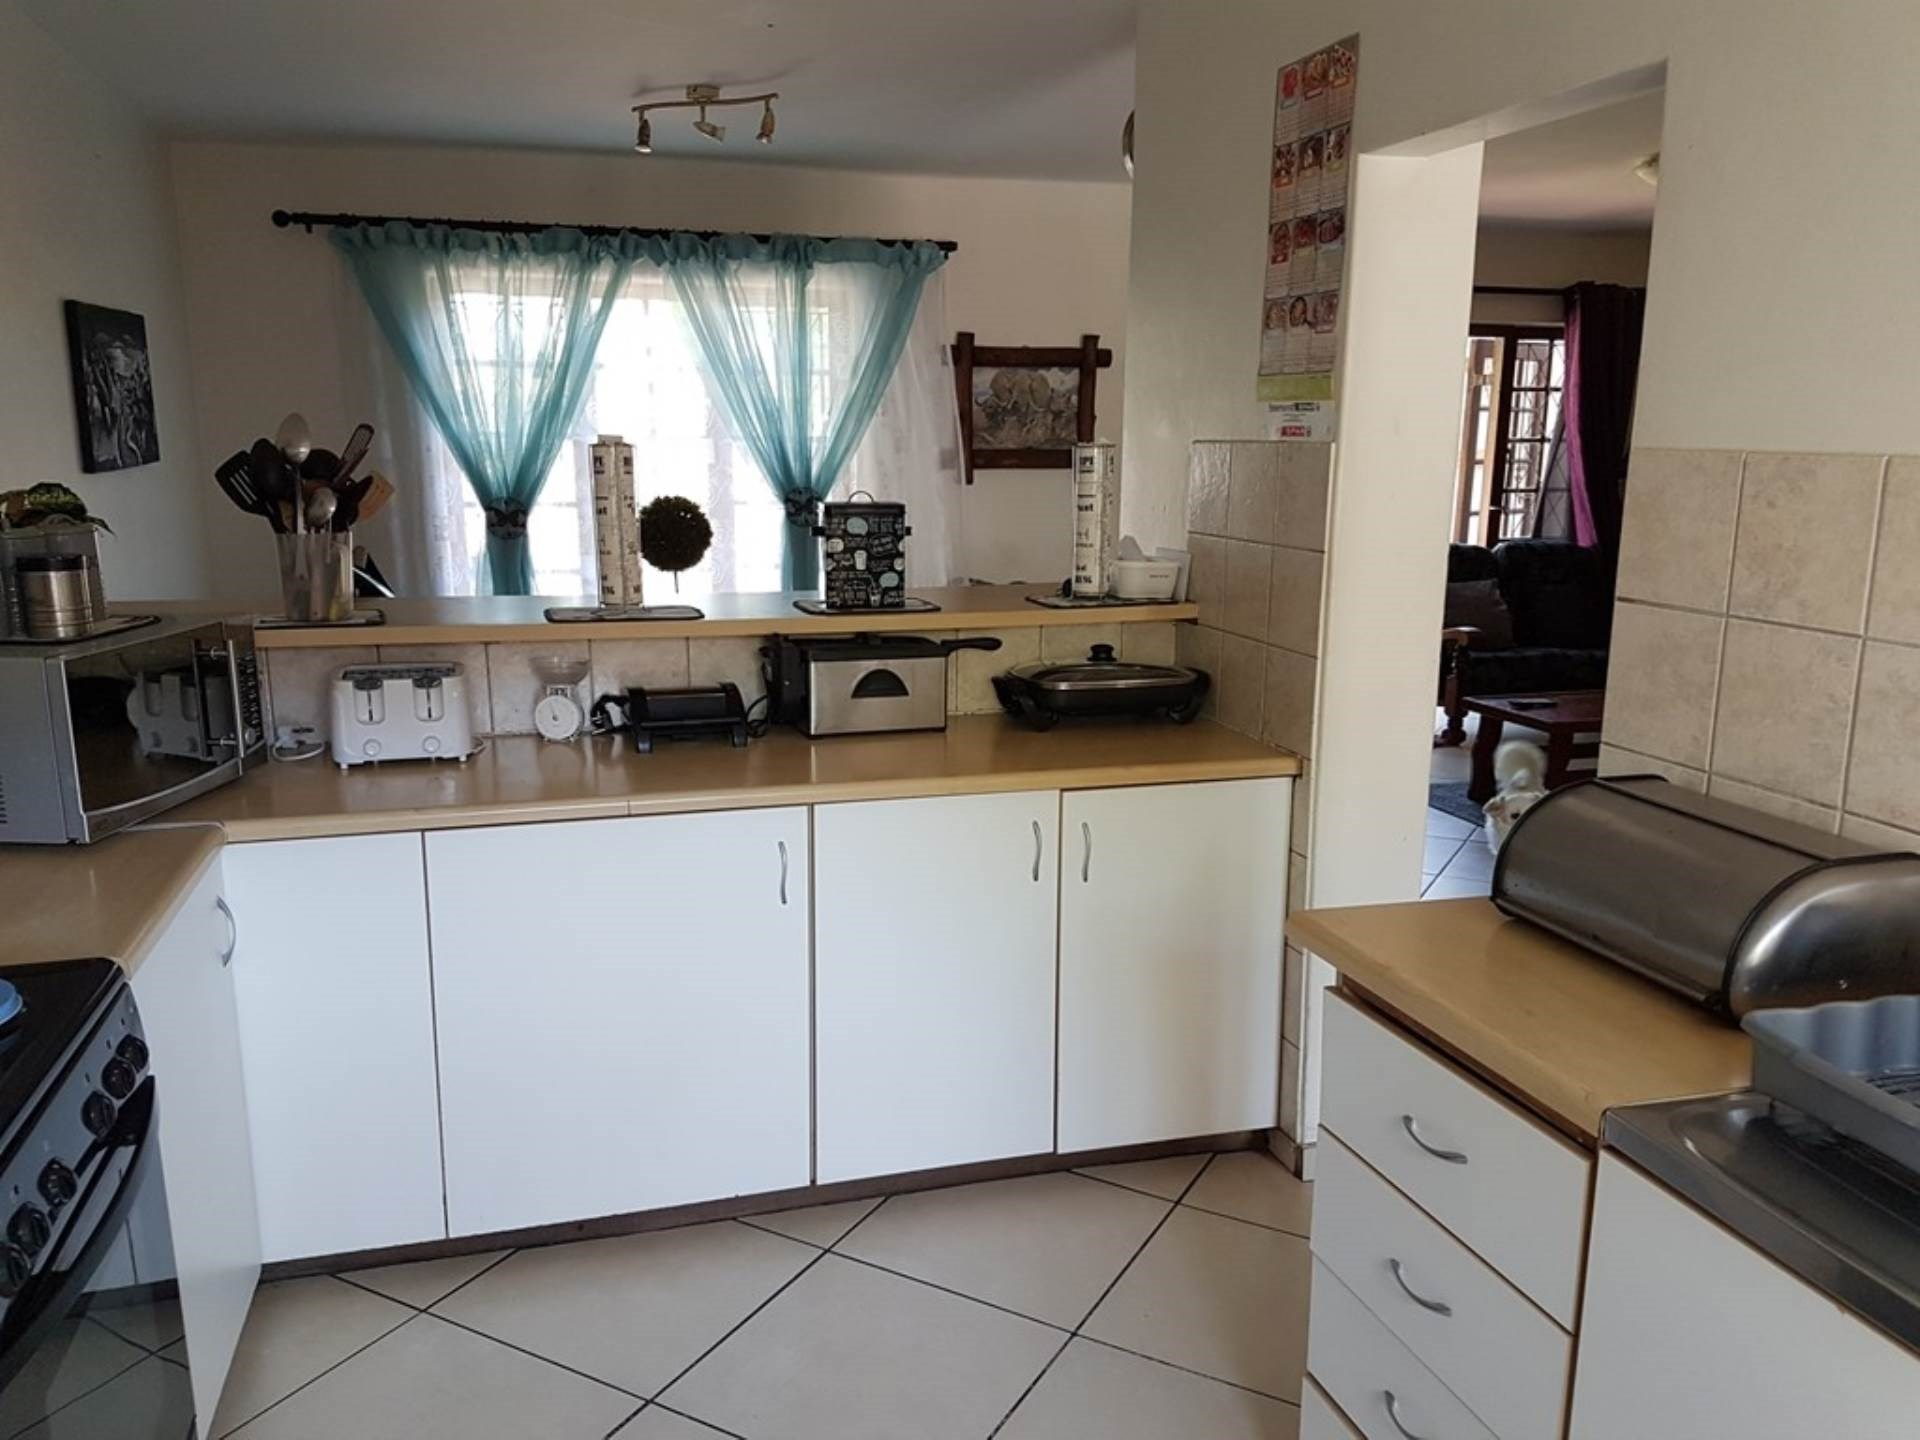 3 Bedroom Flat for Sale in Arboretum